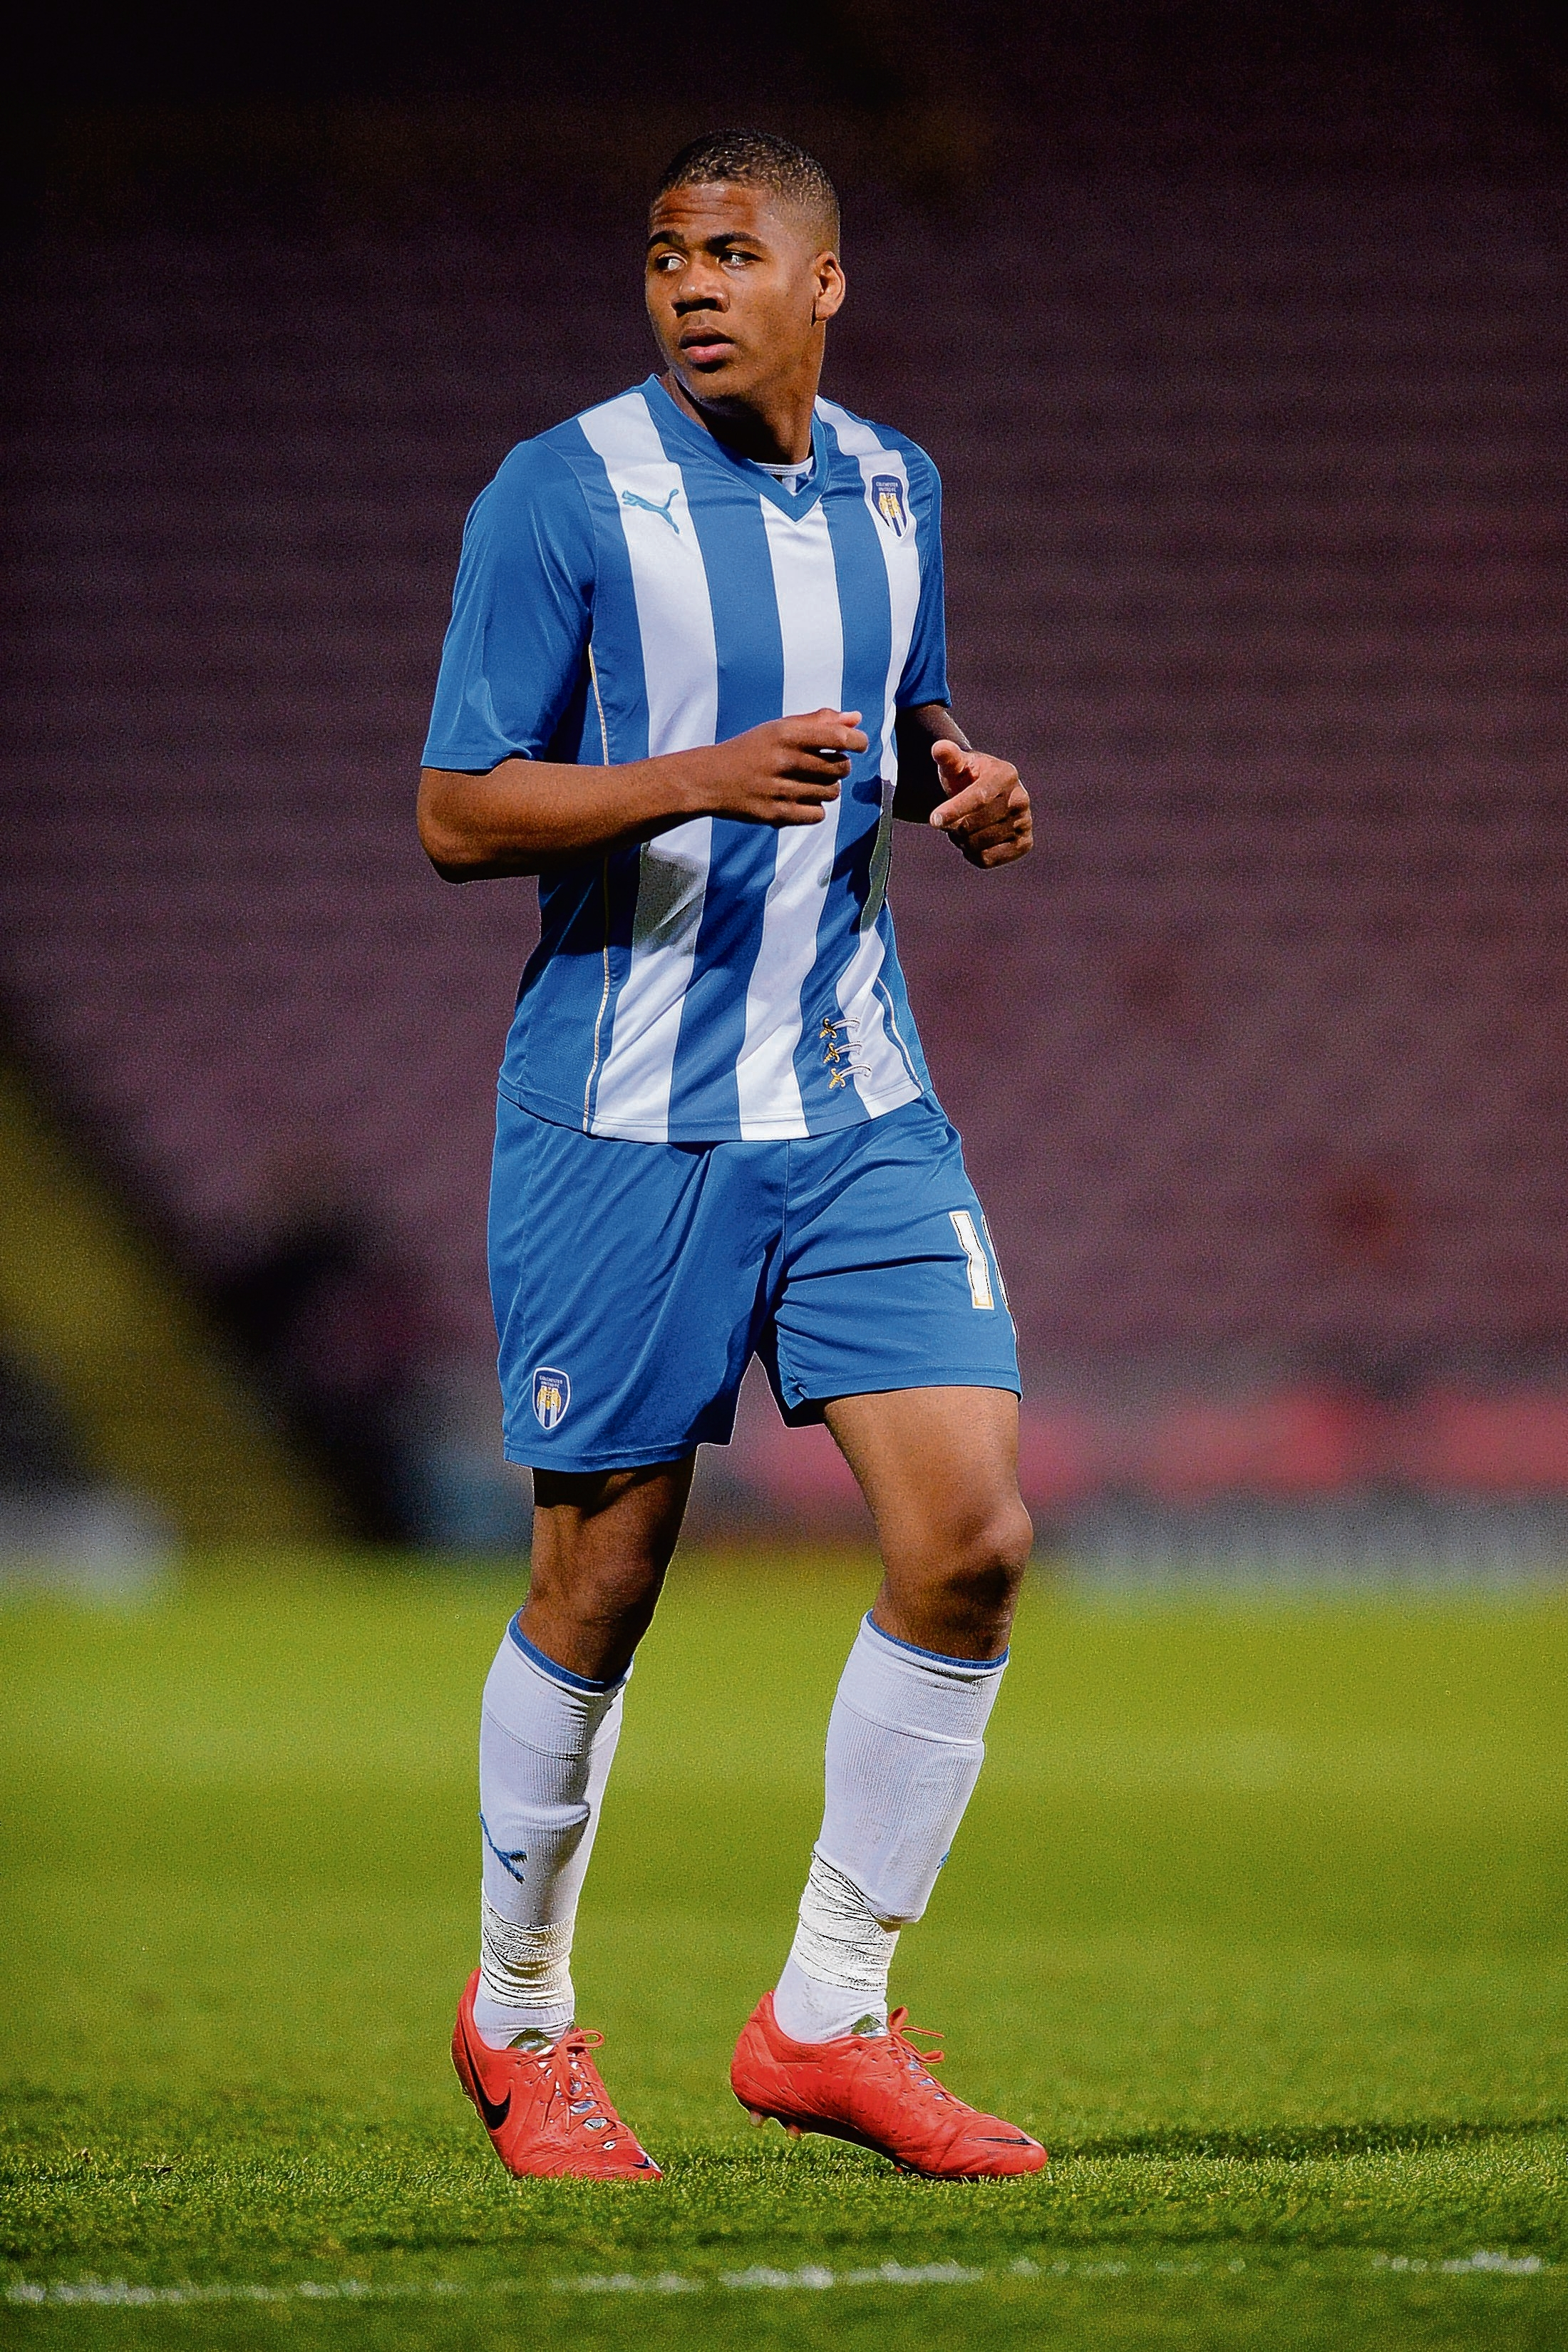 On target - Dominic Smith scored twice in Colchester United under-21s' friendly win at Brantham Athletic.